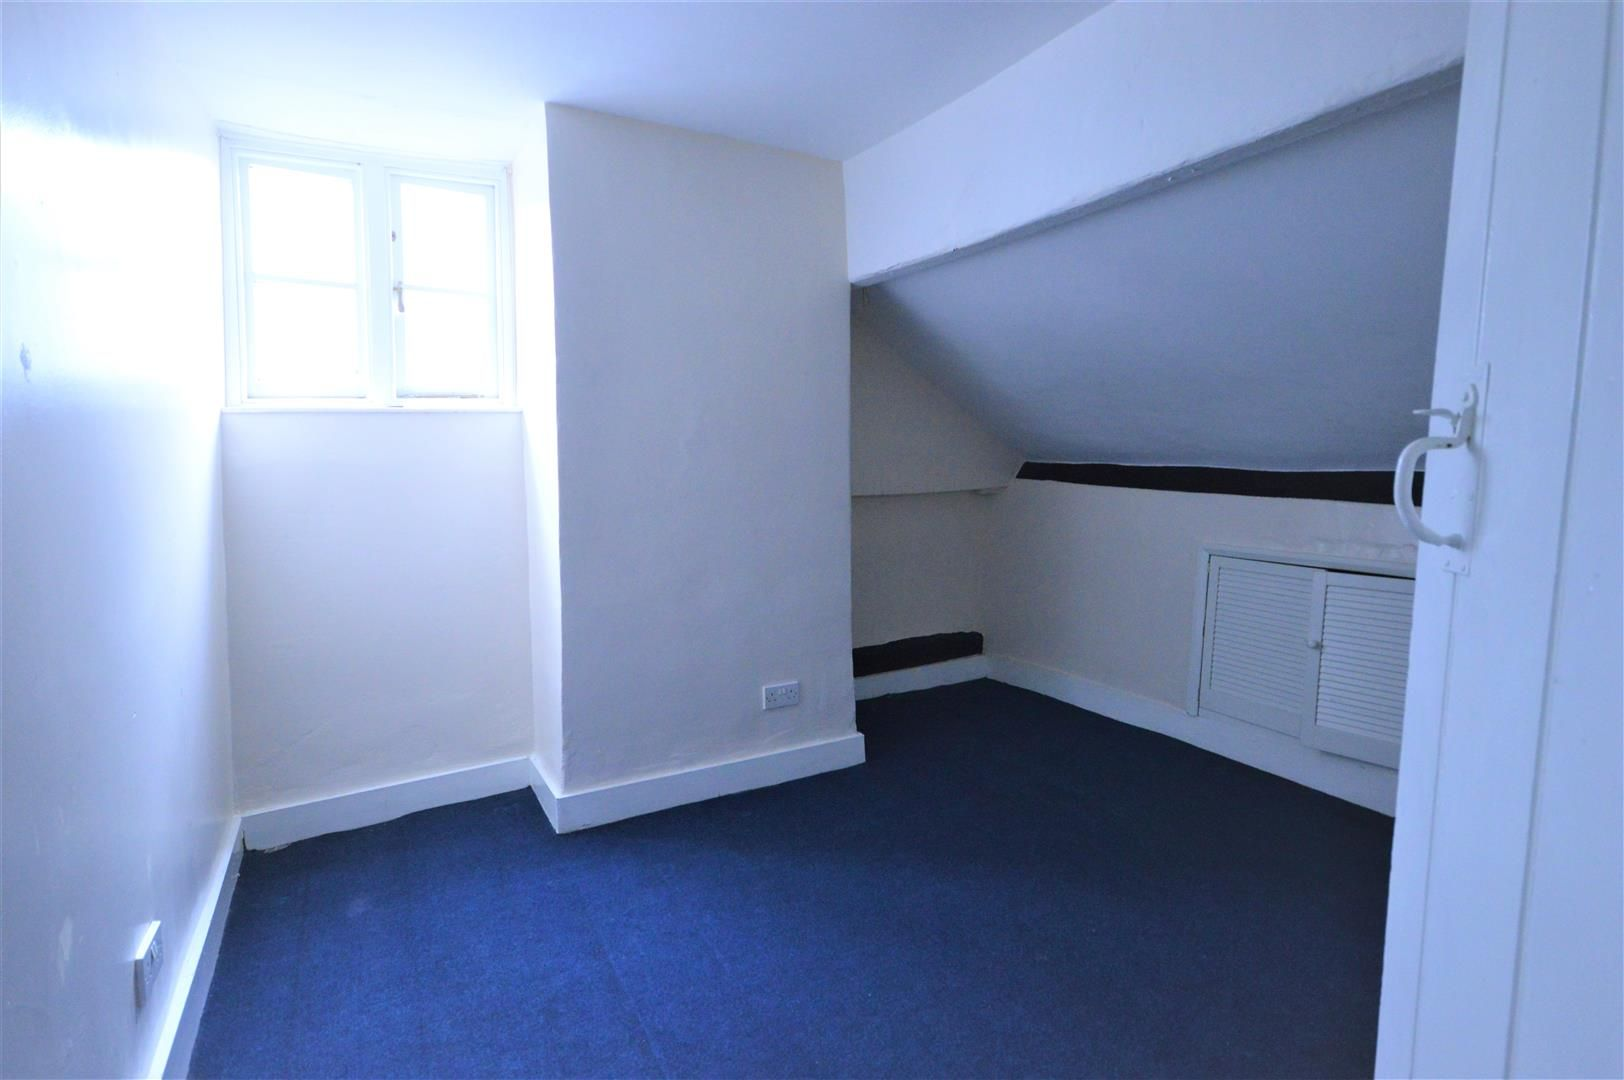 4 bed terraced for sale in Leominster 9